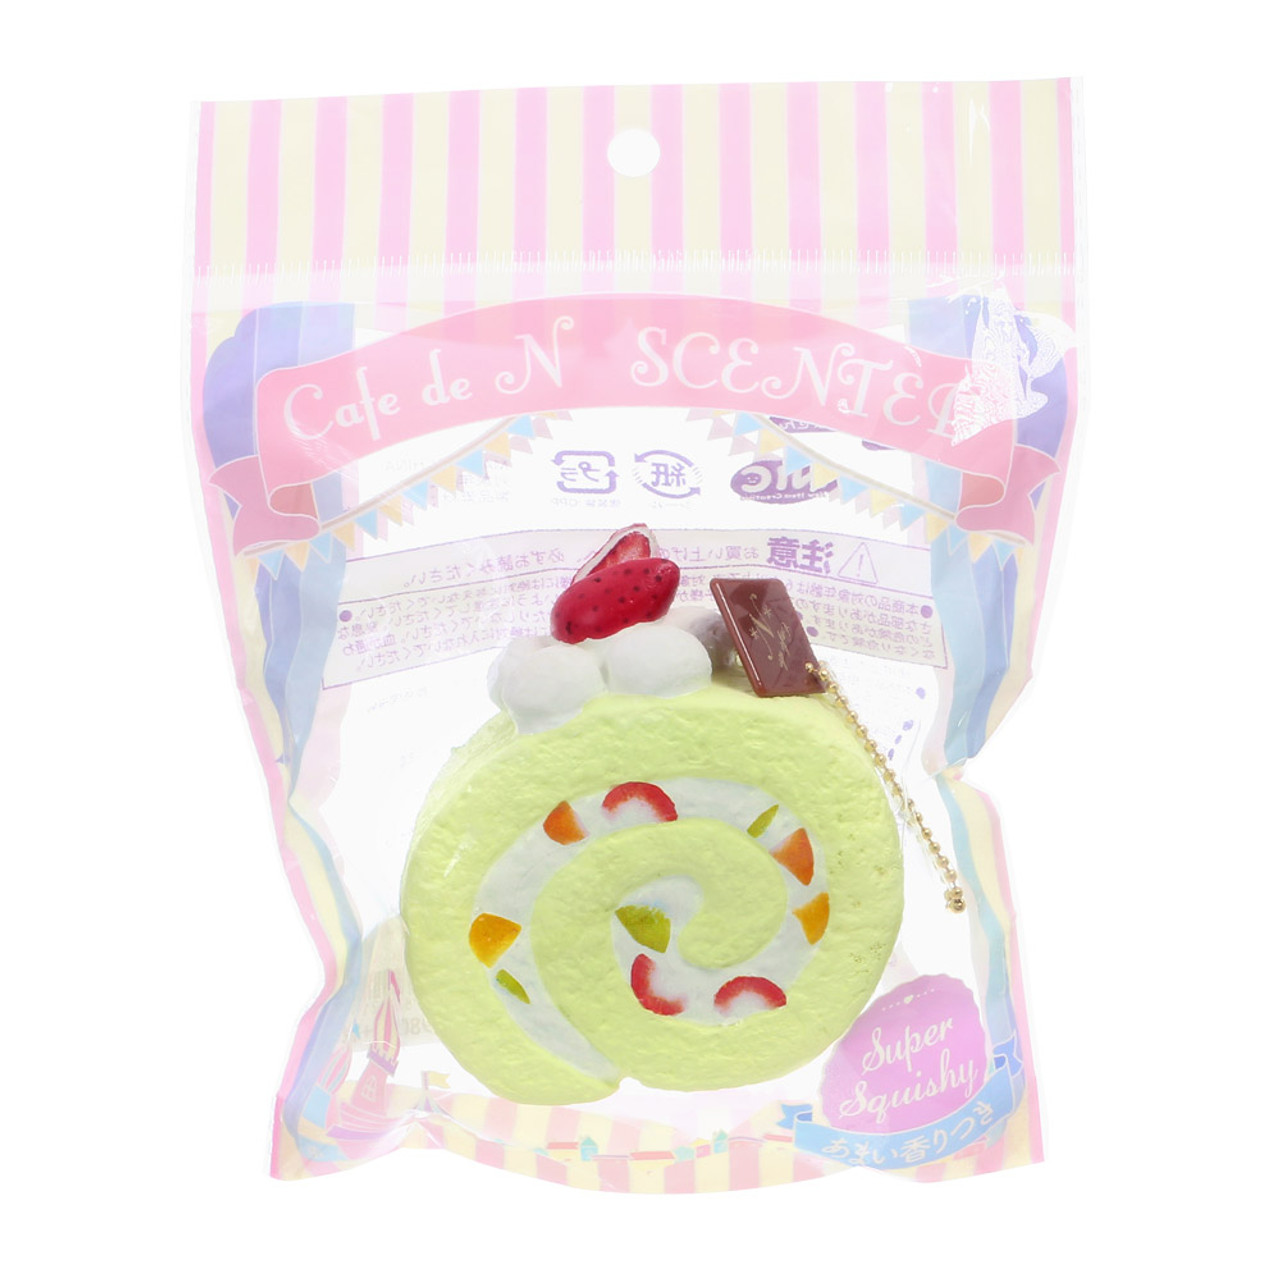 Café De N Scented Matcha Green Tea Roll Cake Squishy Toys Charms ( Package View )